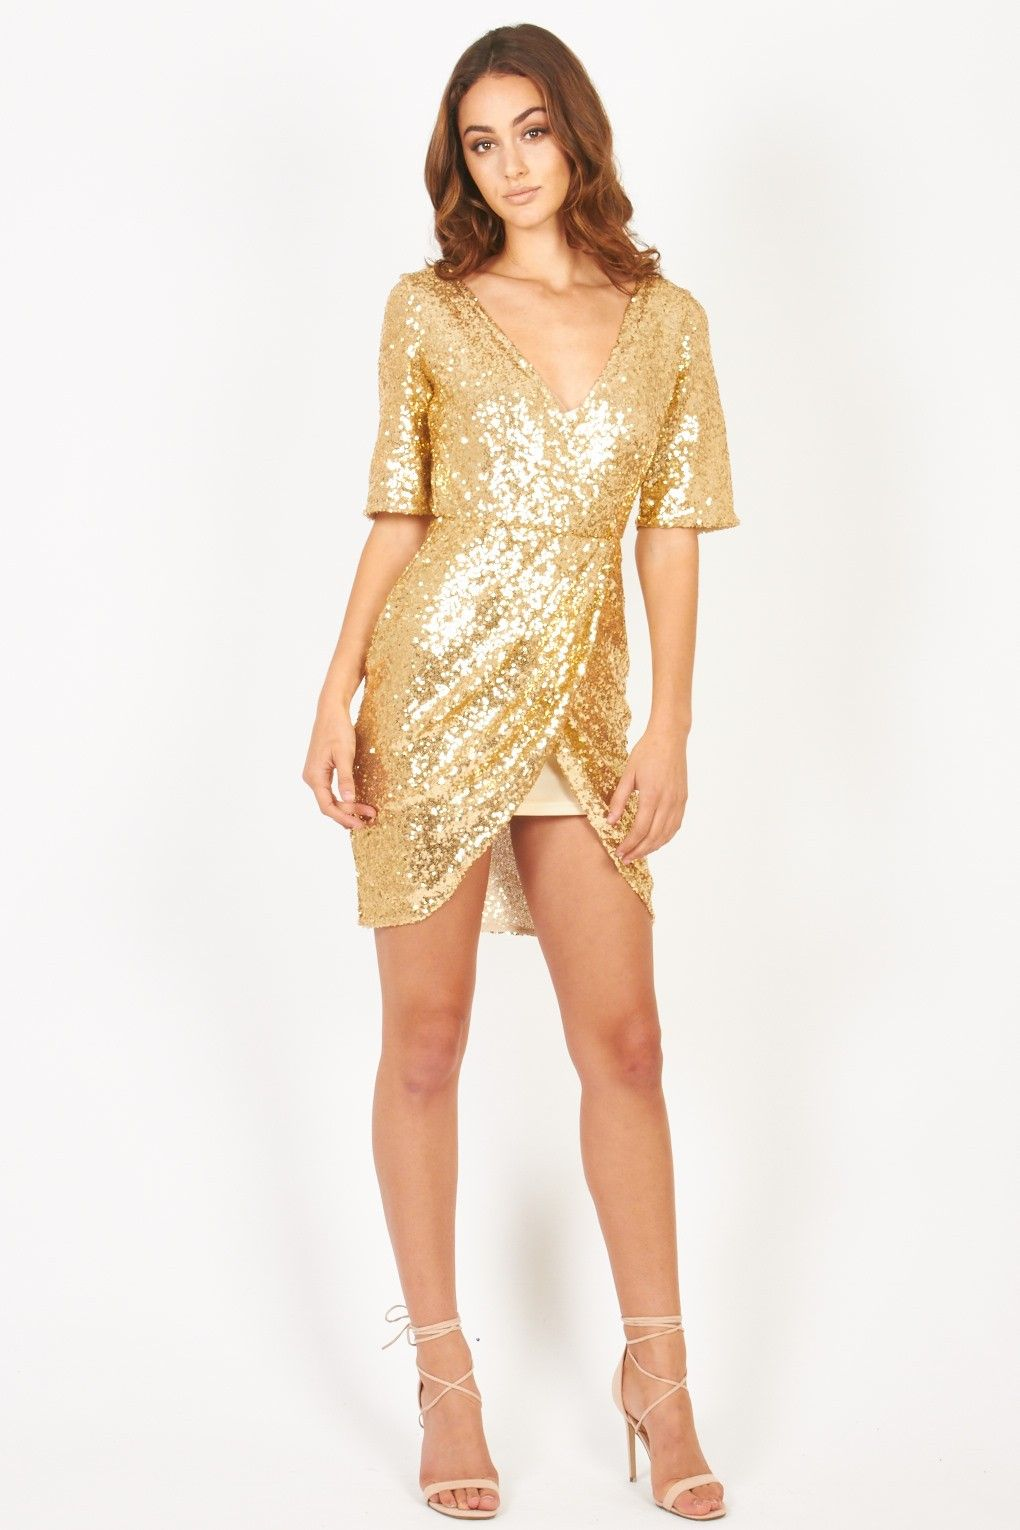 ac272439 TFNC GIN GOLD SEQUIN DRESS | TFNC PARTY DRESSES | J&H's New Years ...